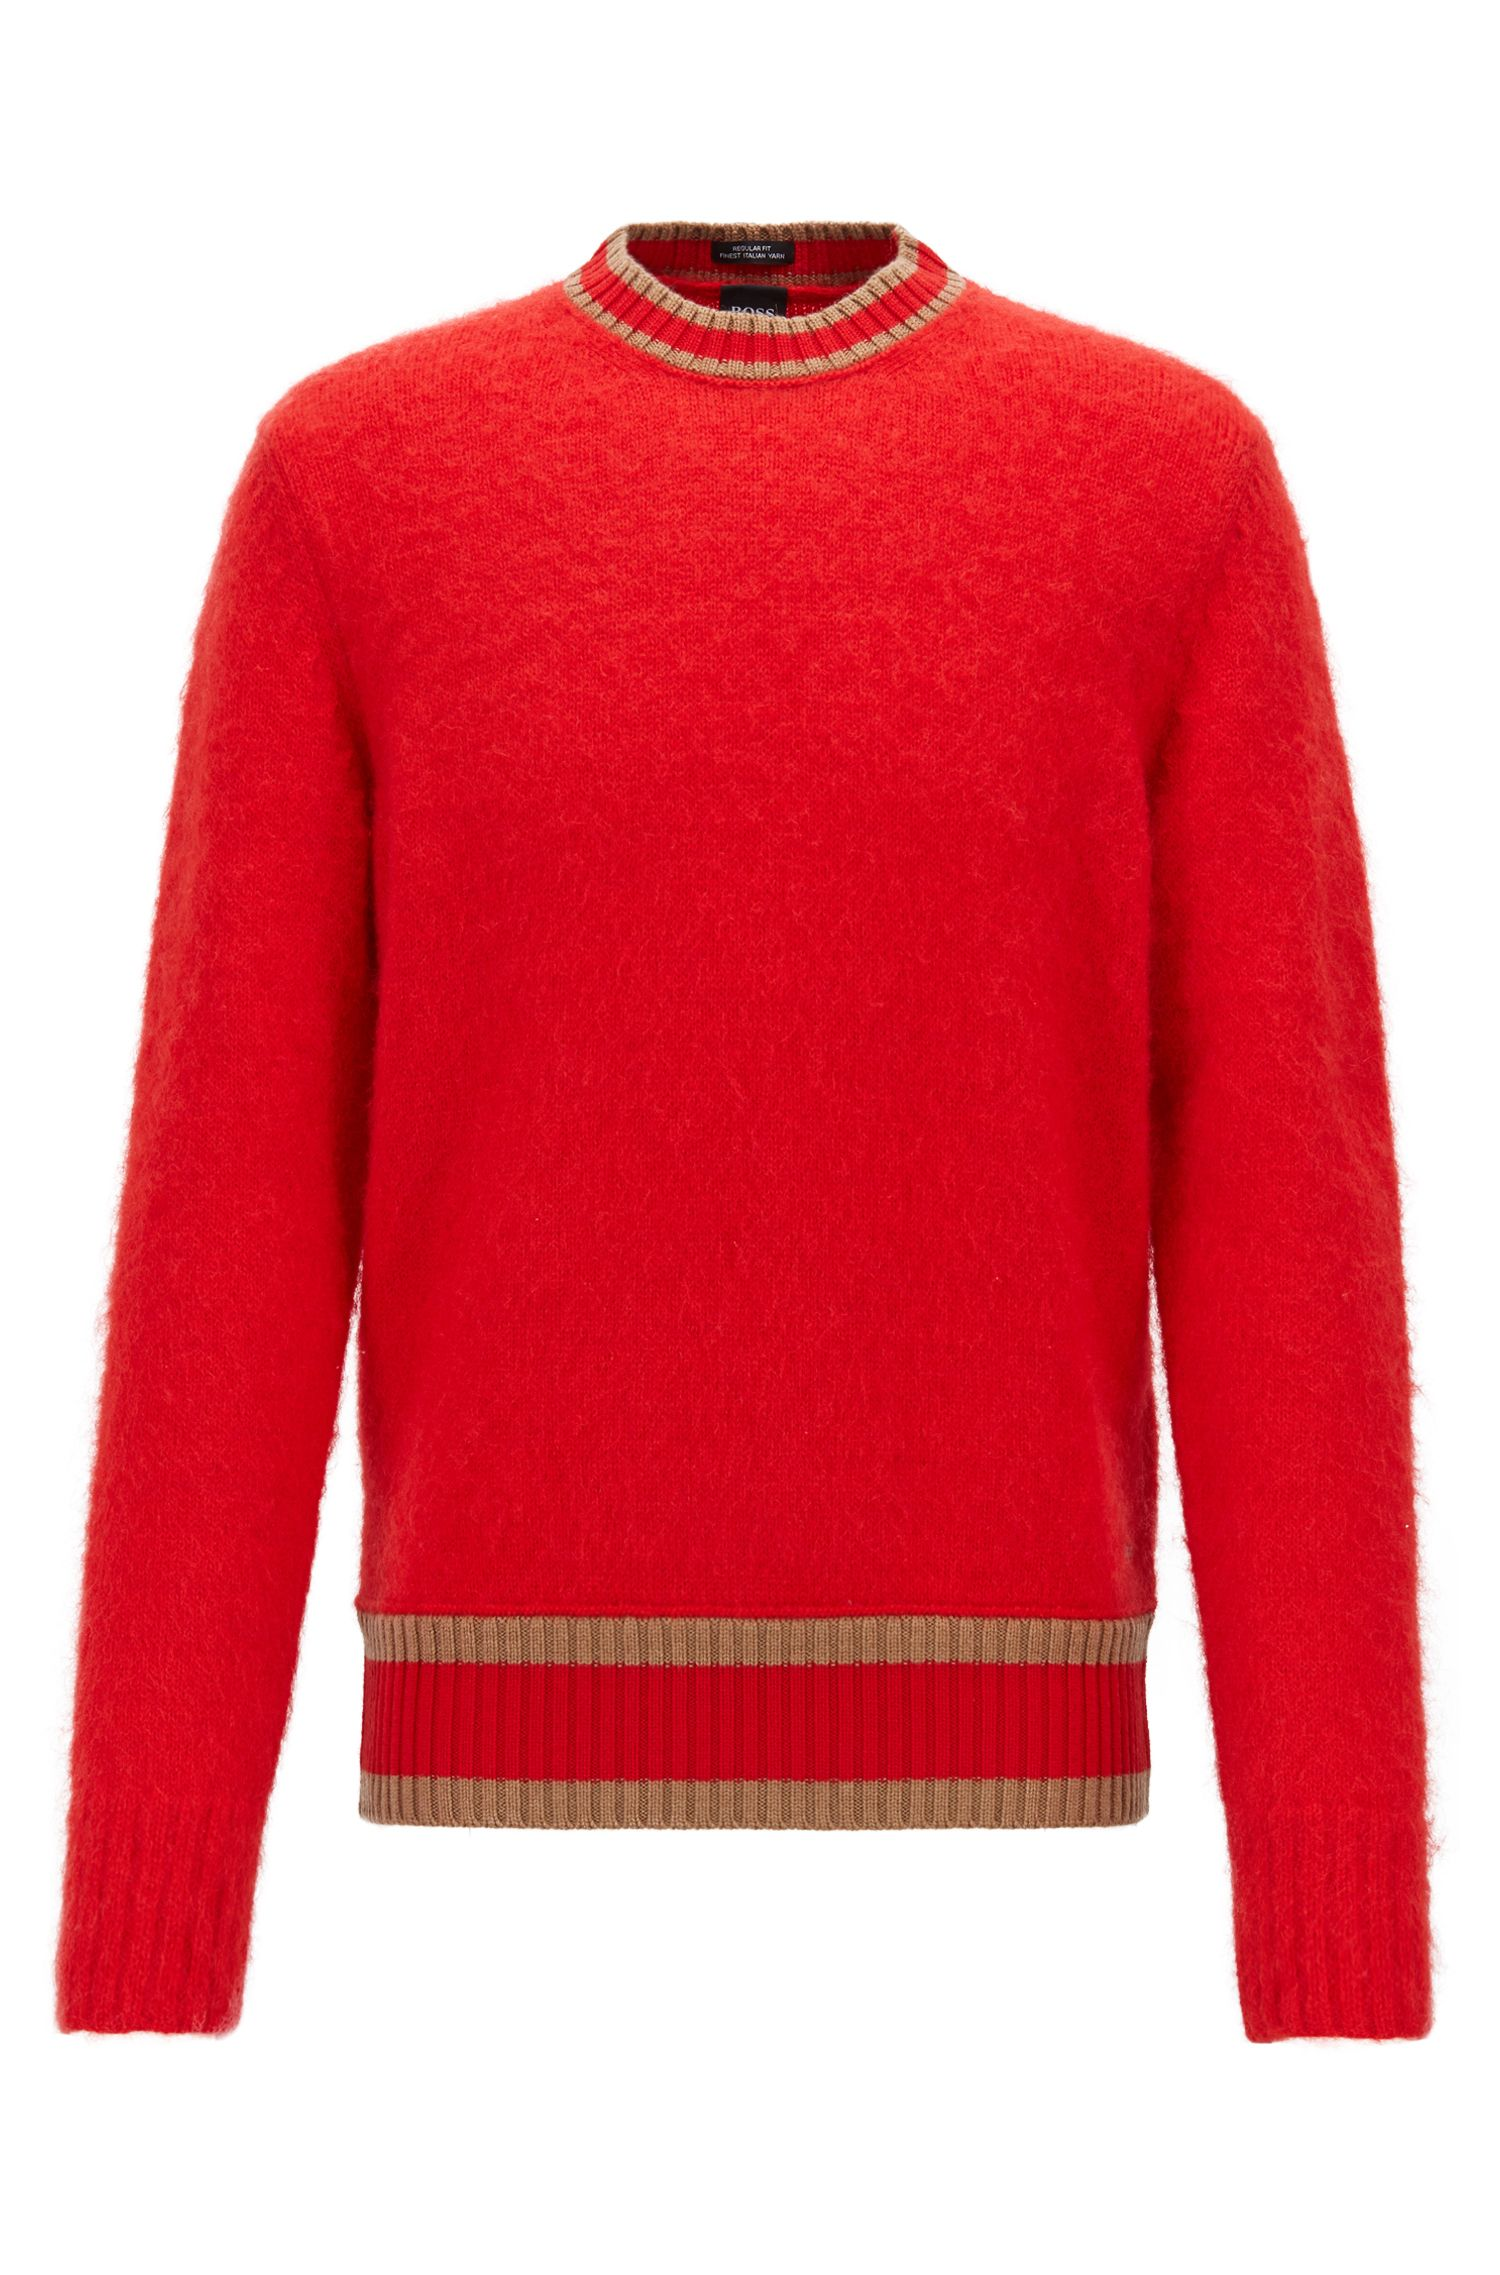 Textured wool sweater with stripe detail, Red